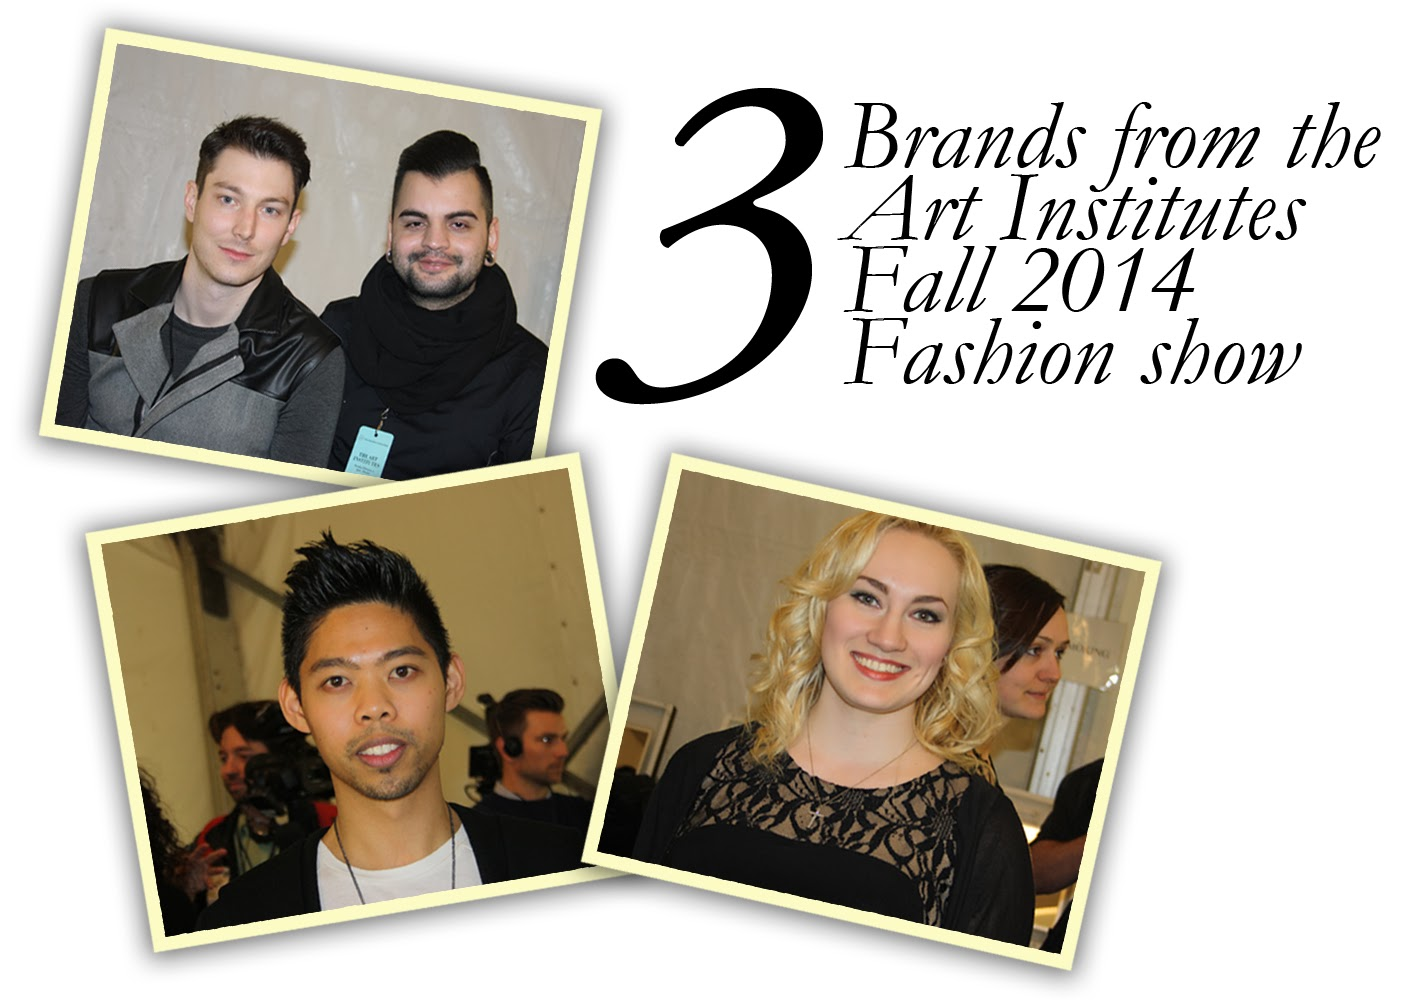 3 Brands from the Art Institutes Fall 2014 Fashion Show